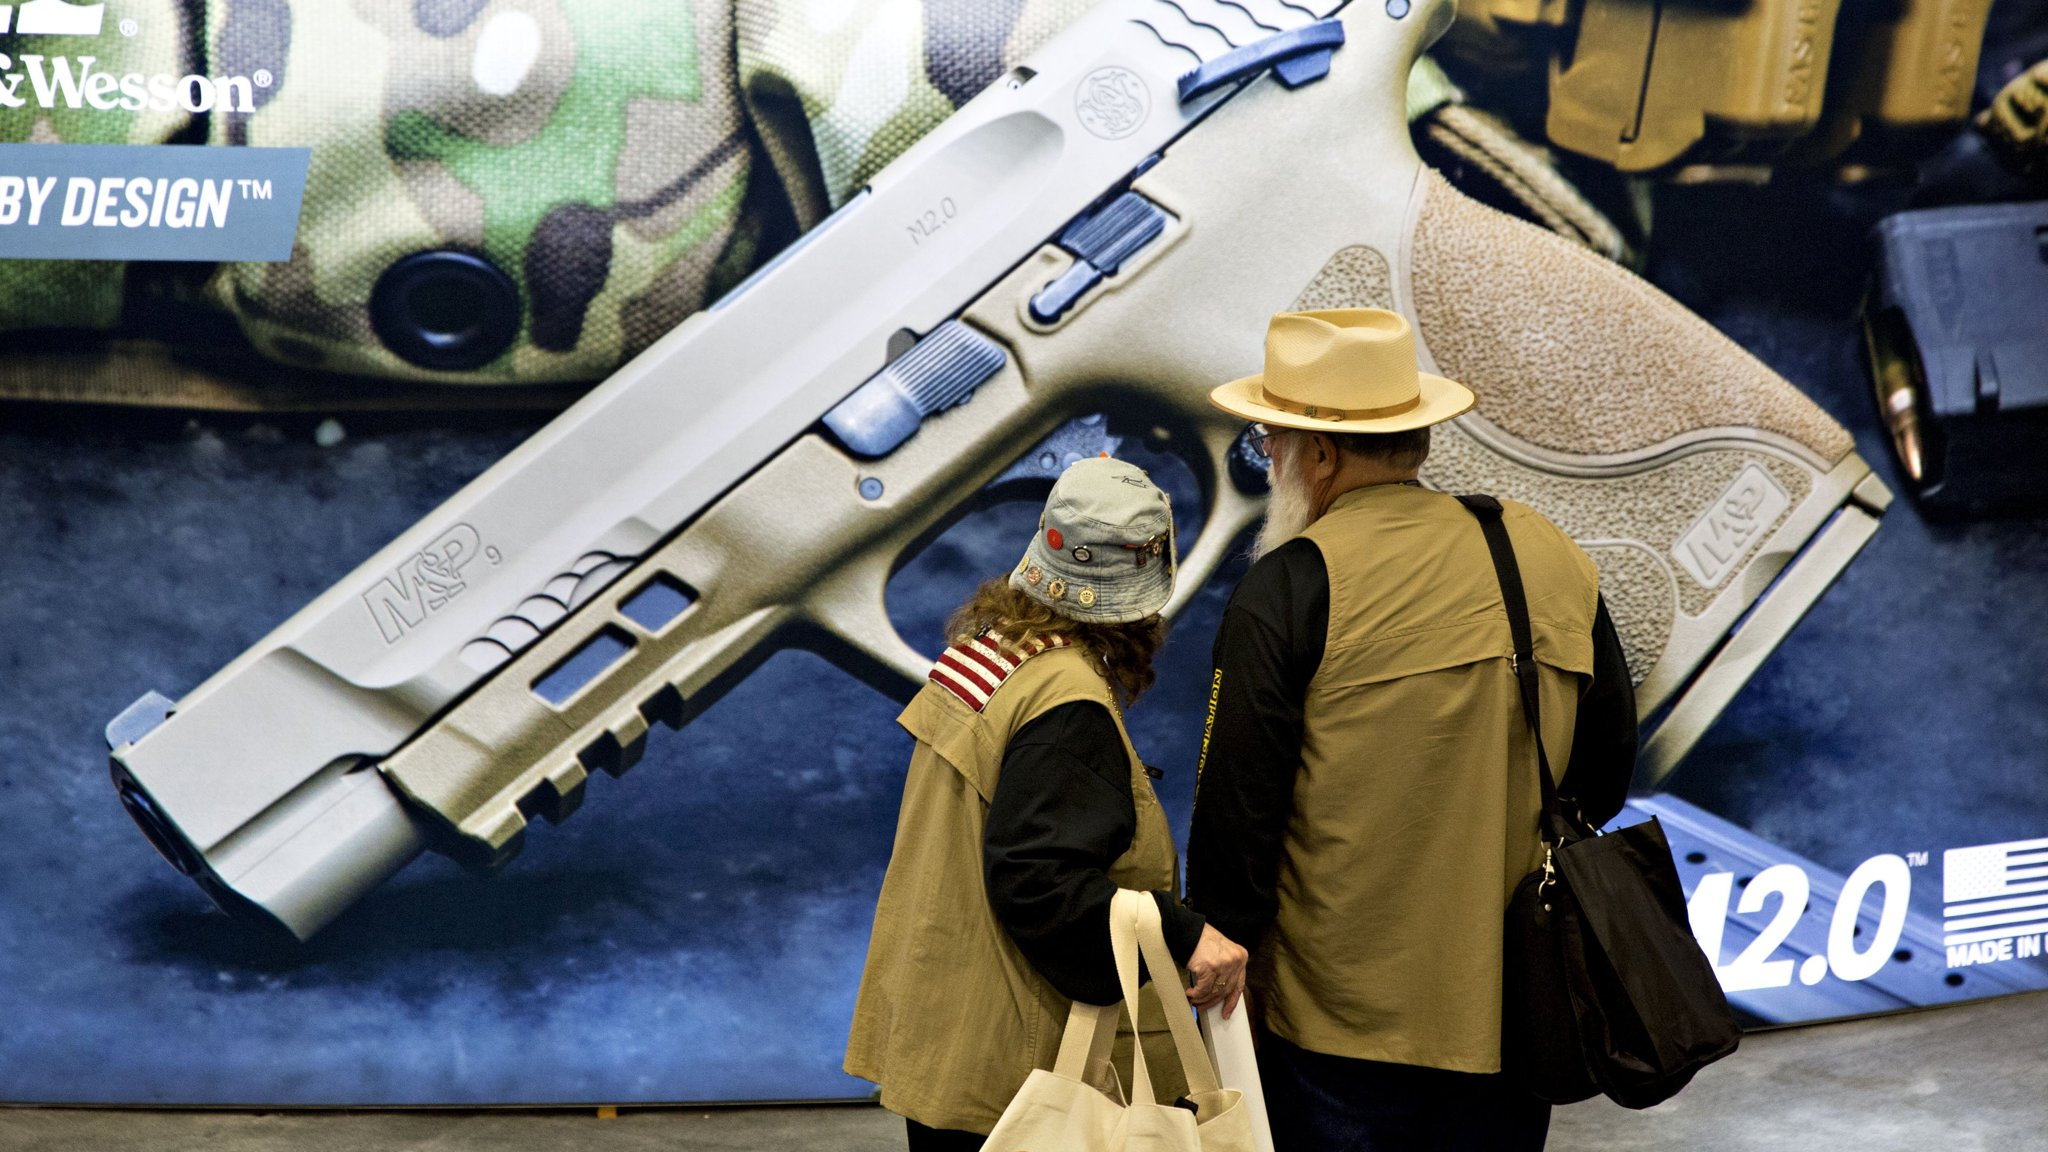 Smith & Wesson owner boosts outlook as US gun demand heats